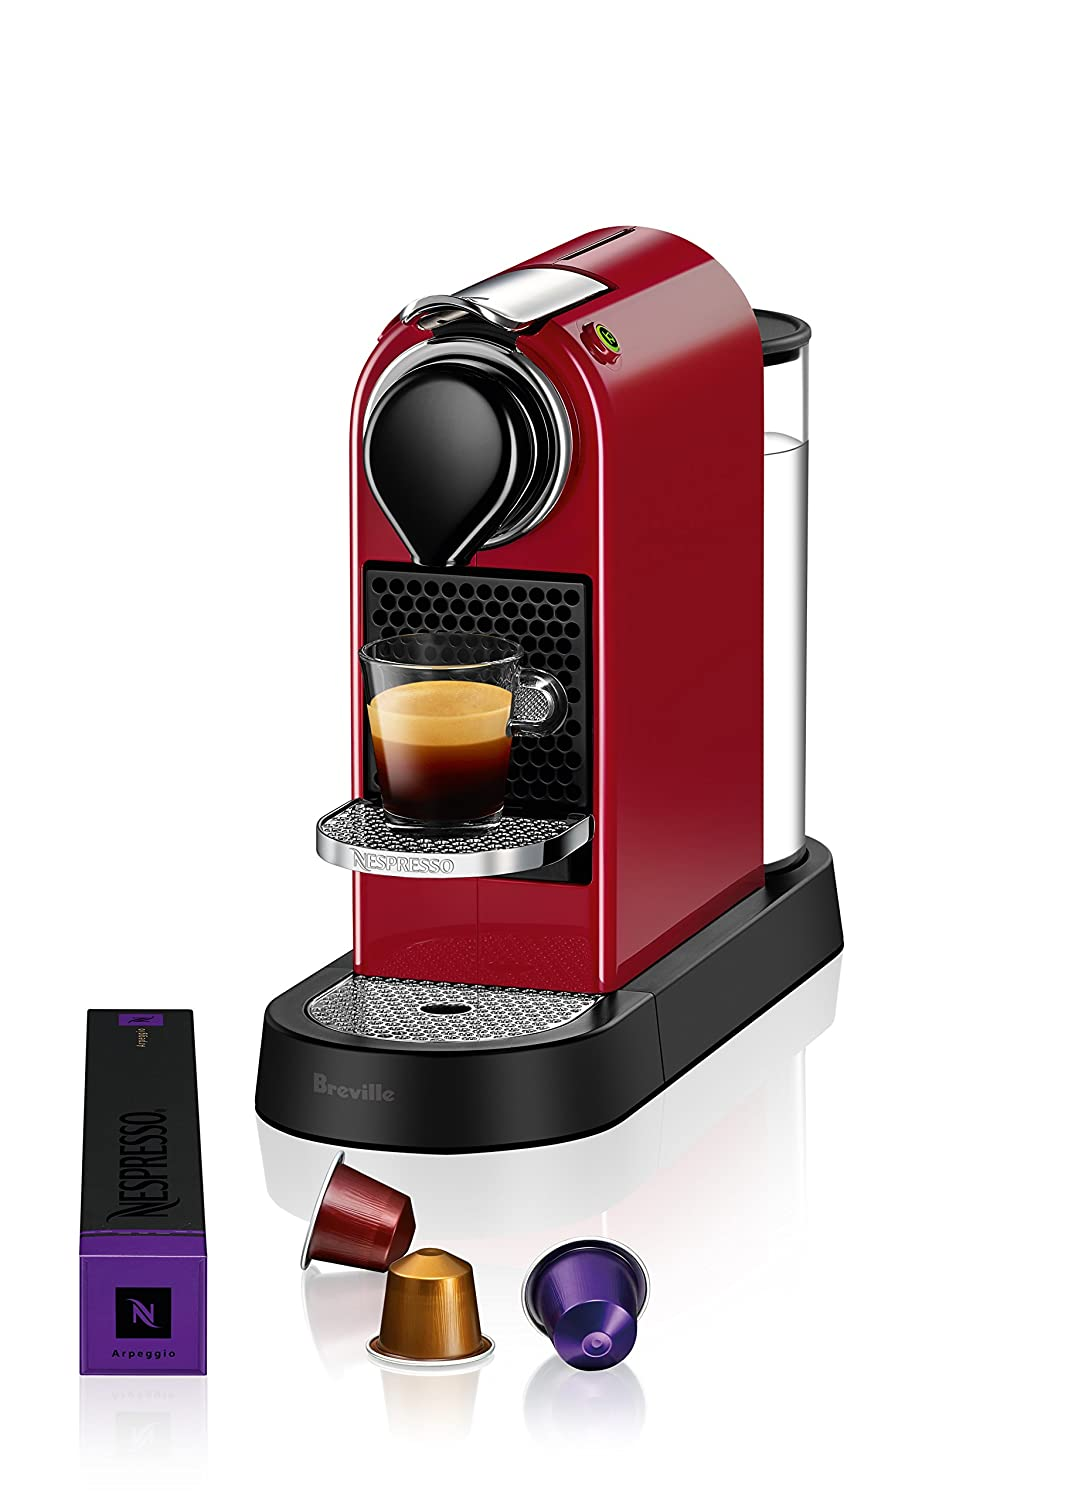 Breville-Nespresso USA BEC620RED1AUC1 CitiZ Espresso Machine, Red